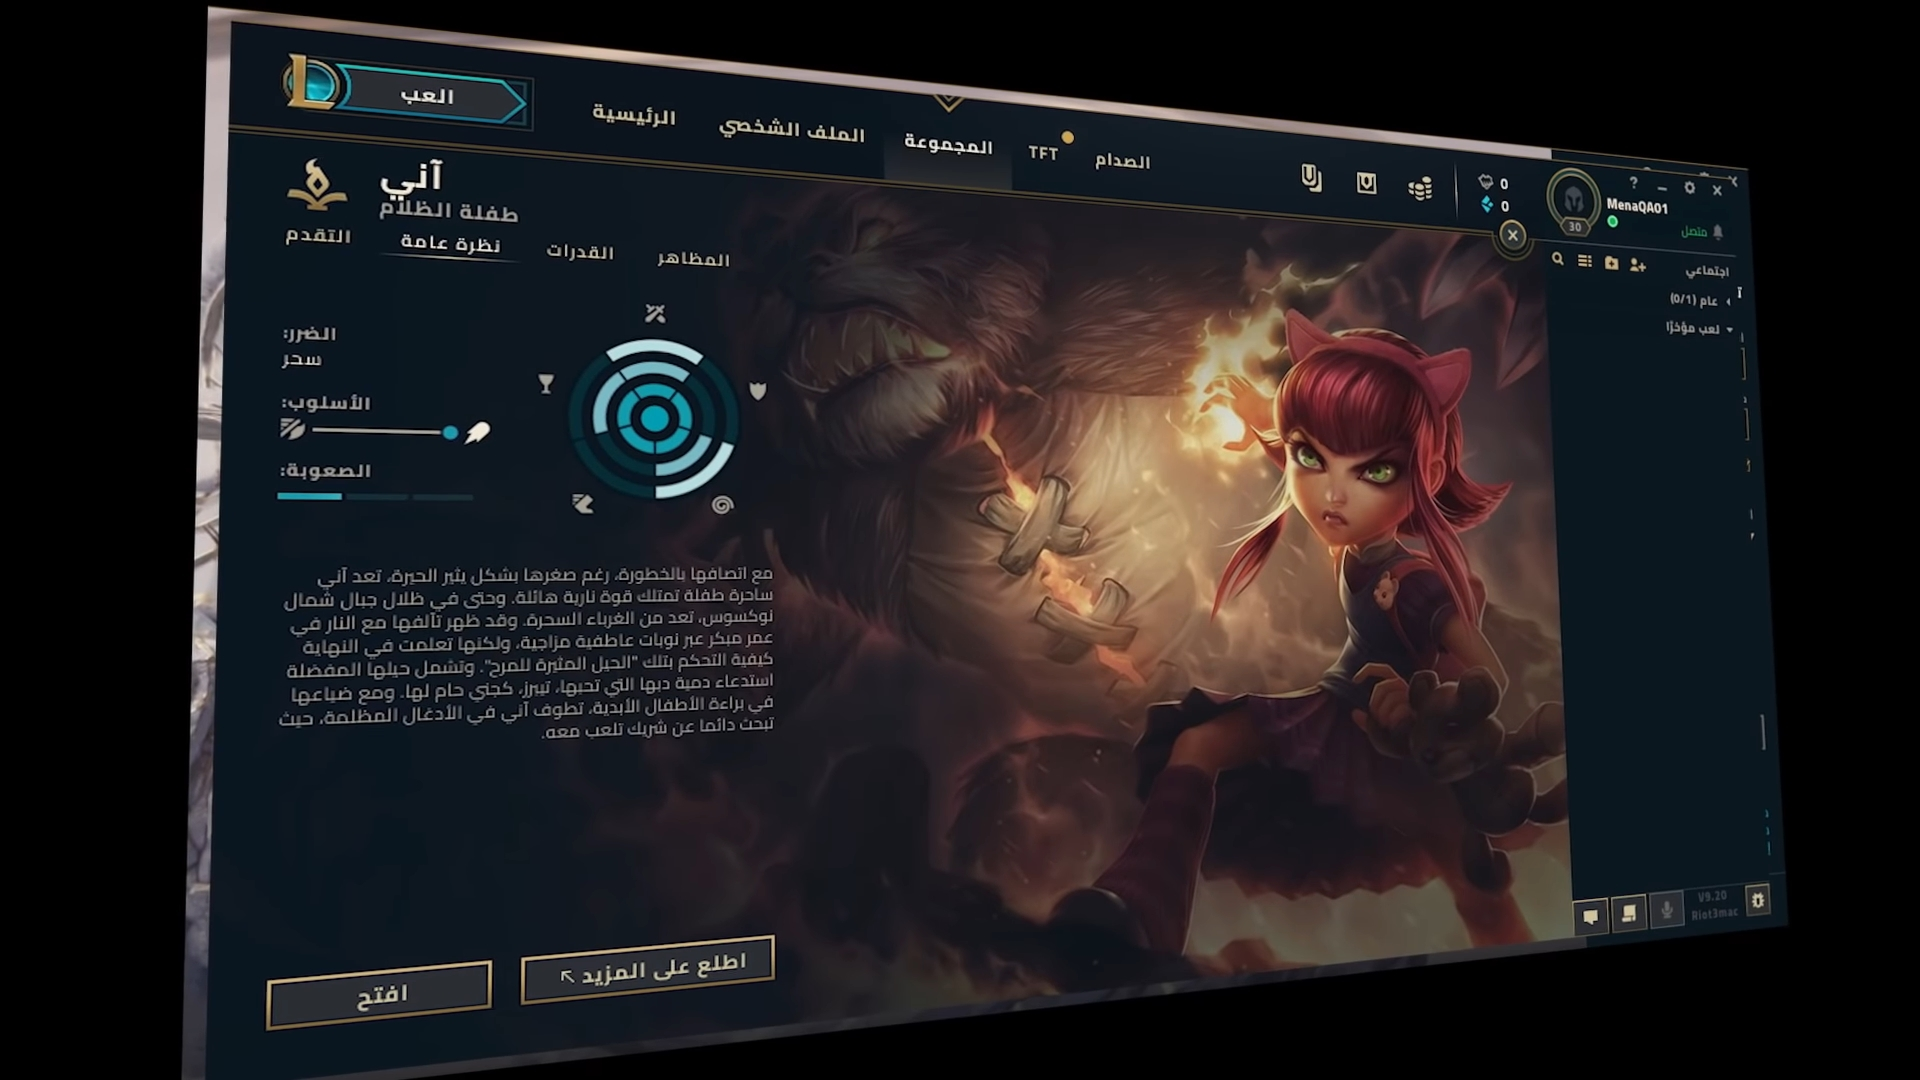 Riot Announces Three New Games With Projects A, L, and F